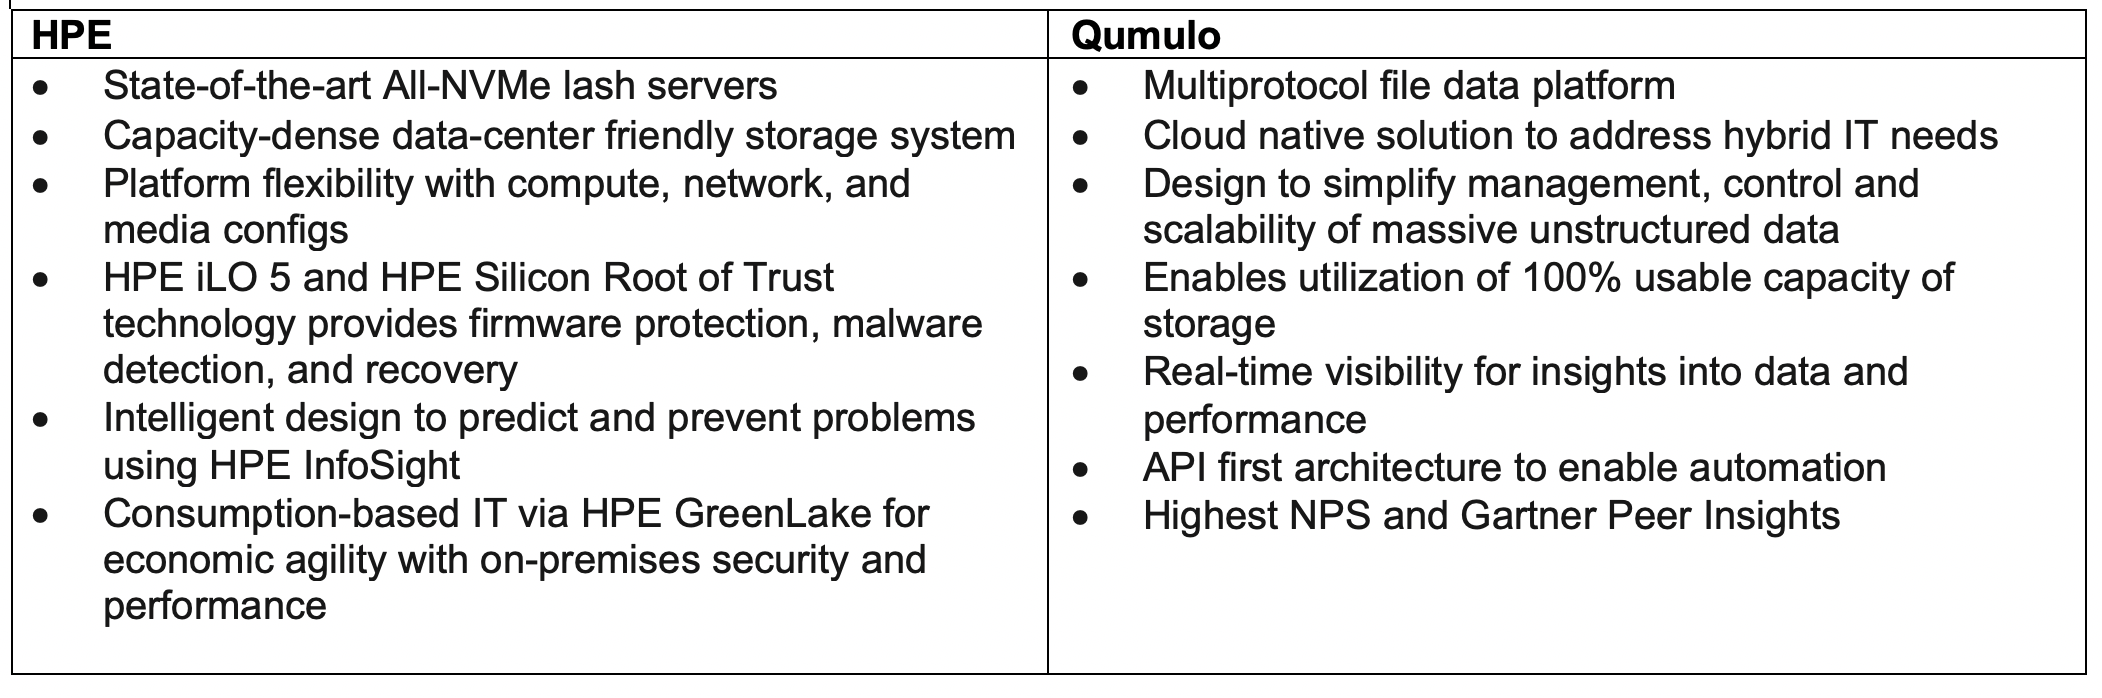 HPE Qumulo table2.png